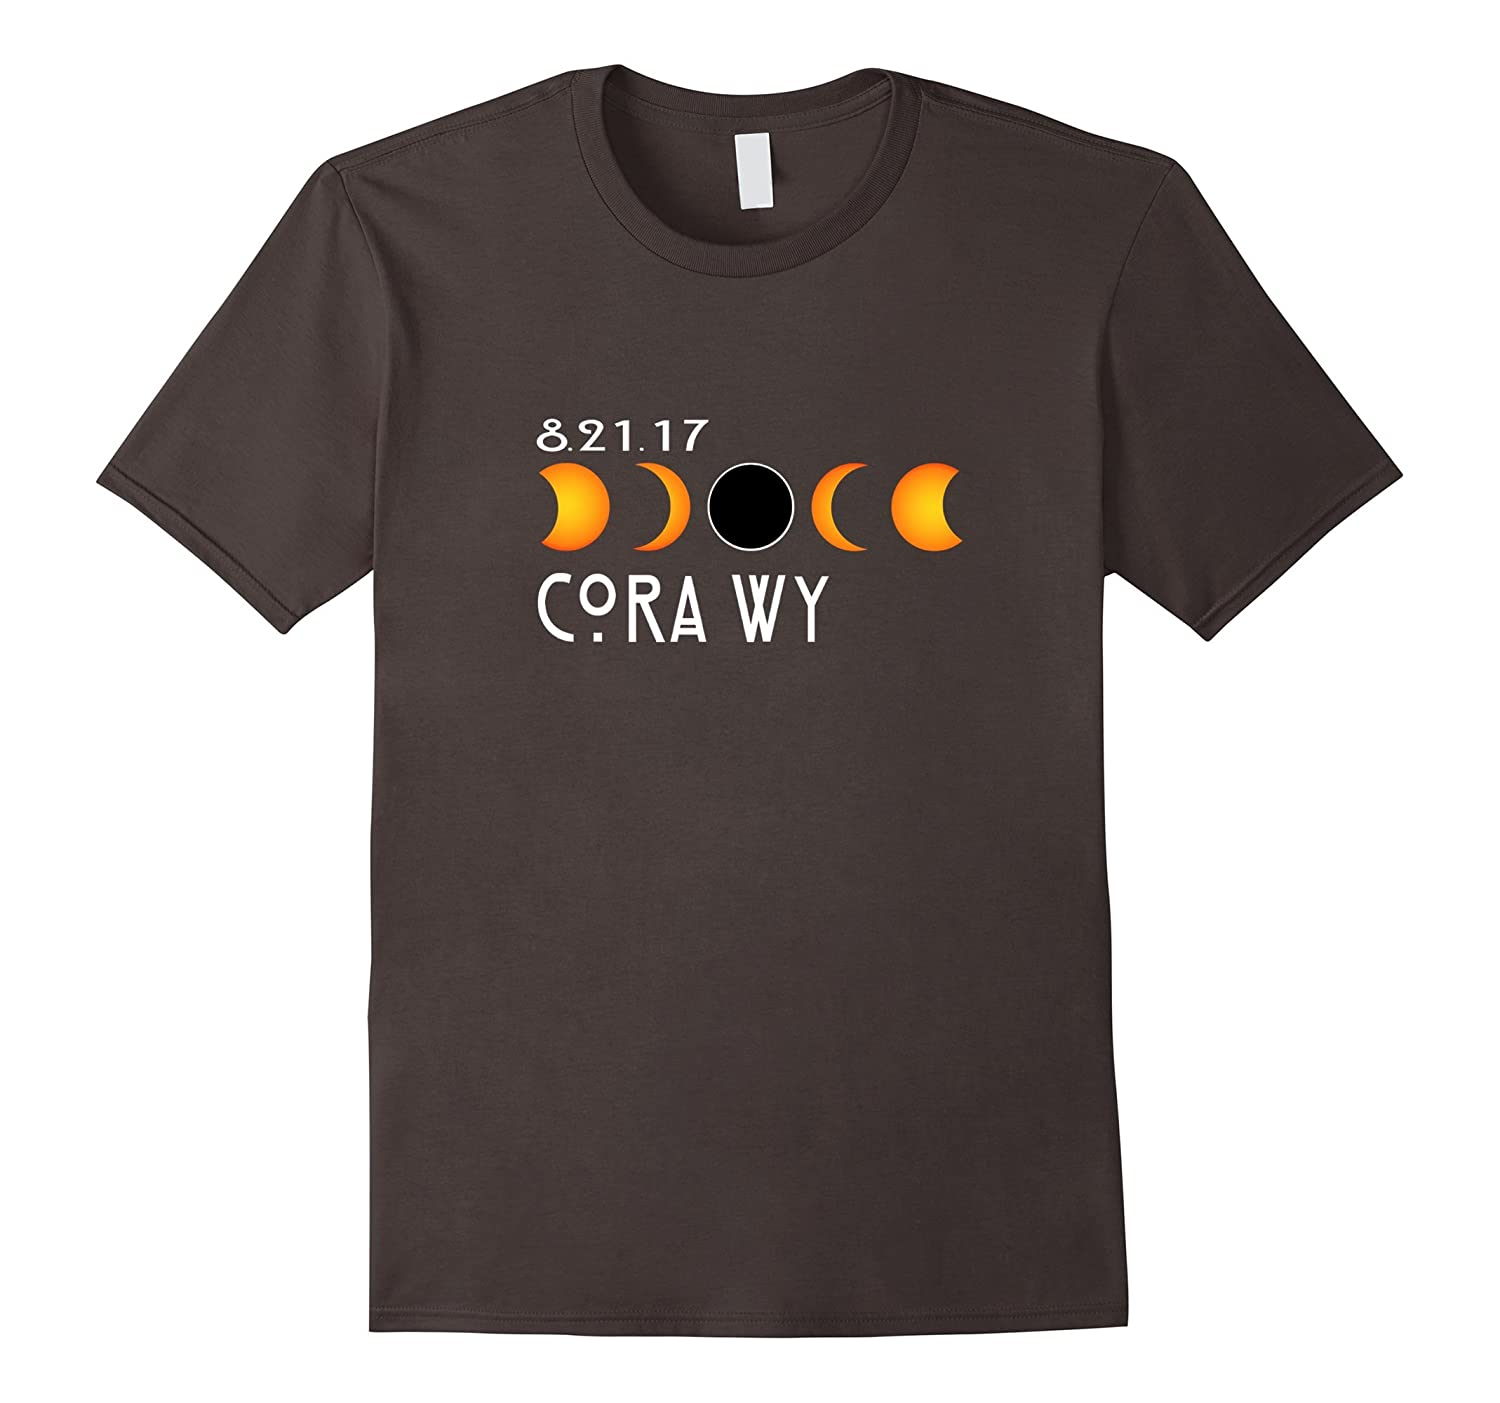 Cora Wyoming Dallas Oregon Total Solar Eclipse 2017 T-Shirt